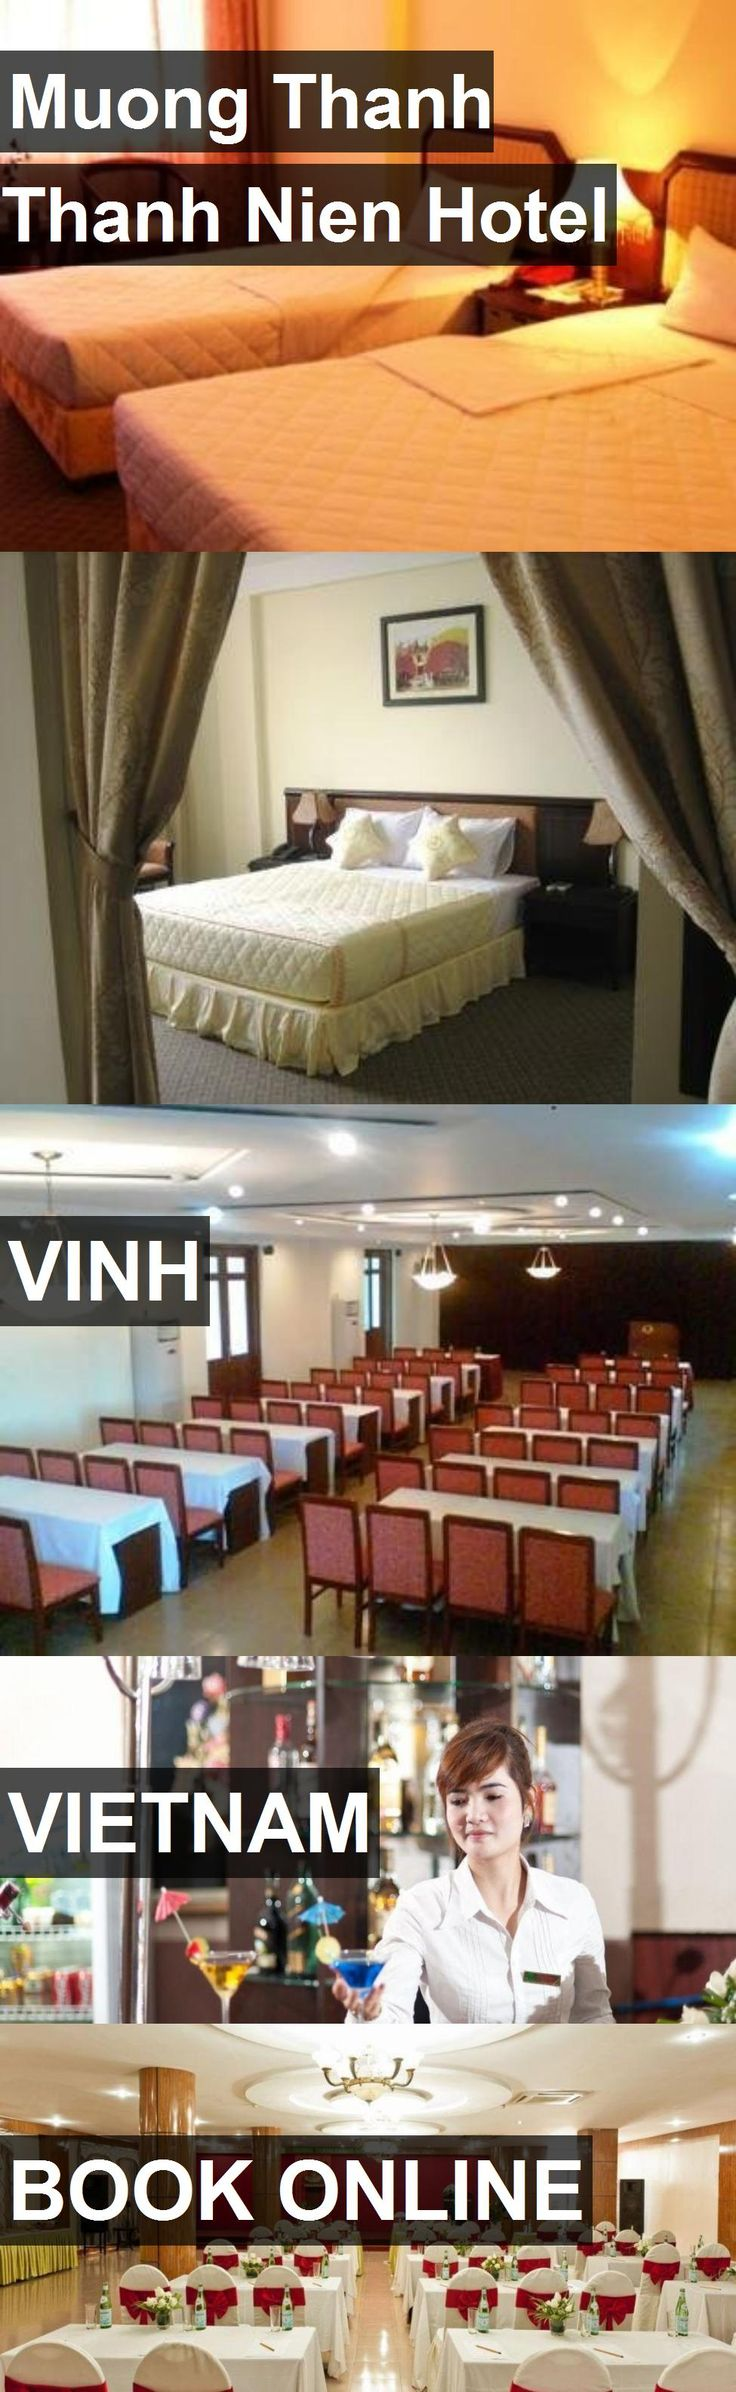 Muong Thanh Thanh Nien Hotel in Vinh, Vietnam. For more information, photos, reviews and best prices please follow the link. #Vietnam #Vinh #travel #vacation #hotel